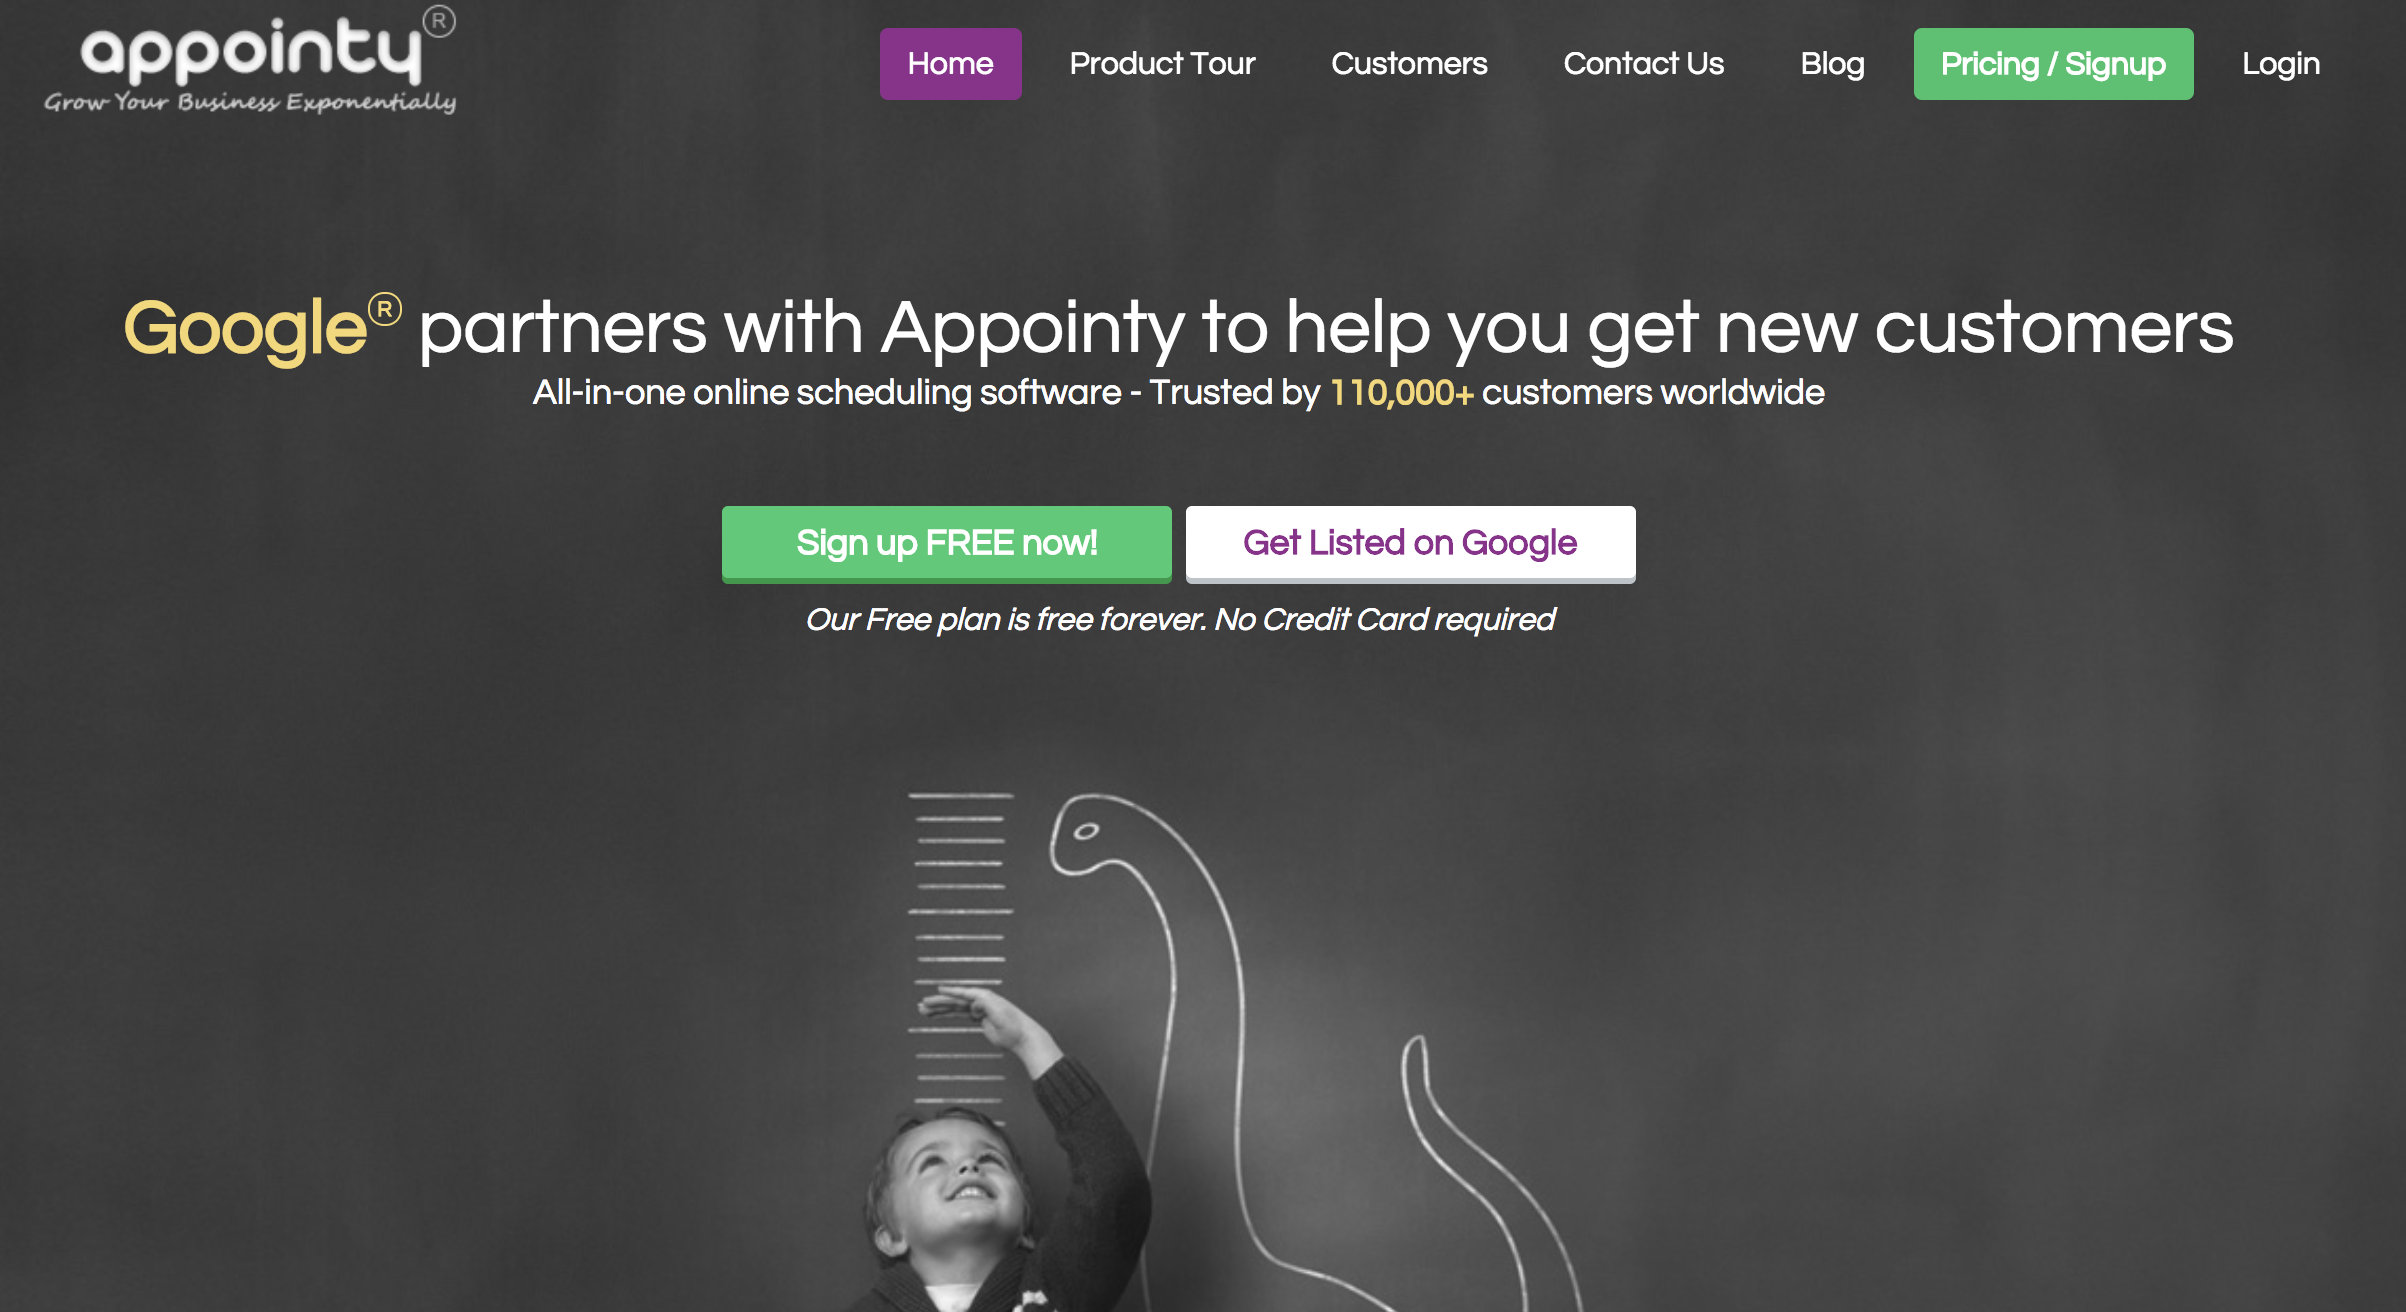 Appointy marketing page